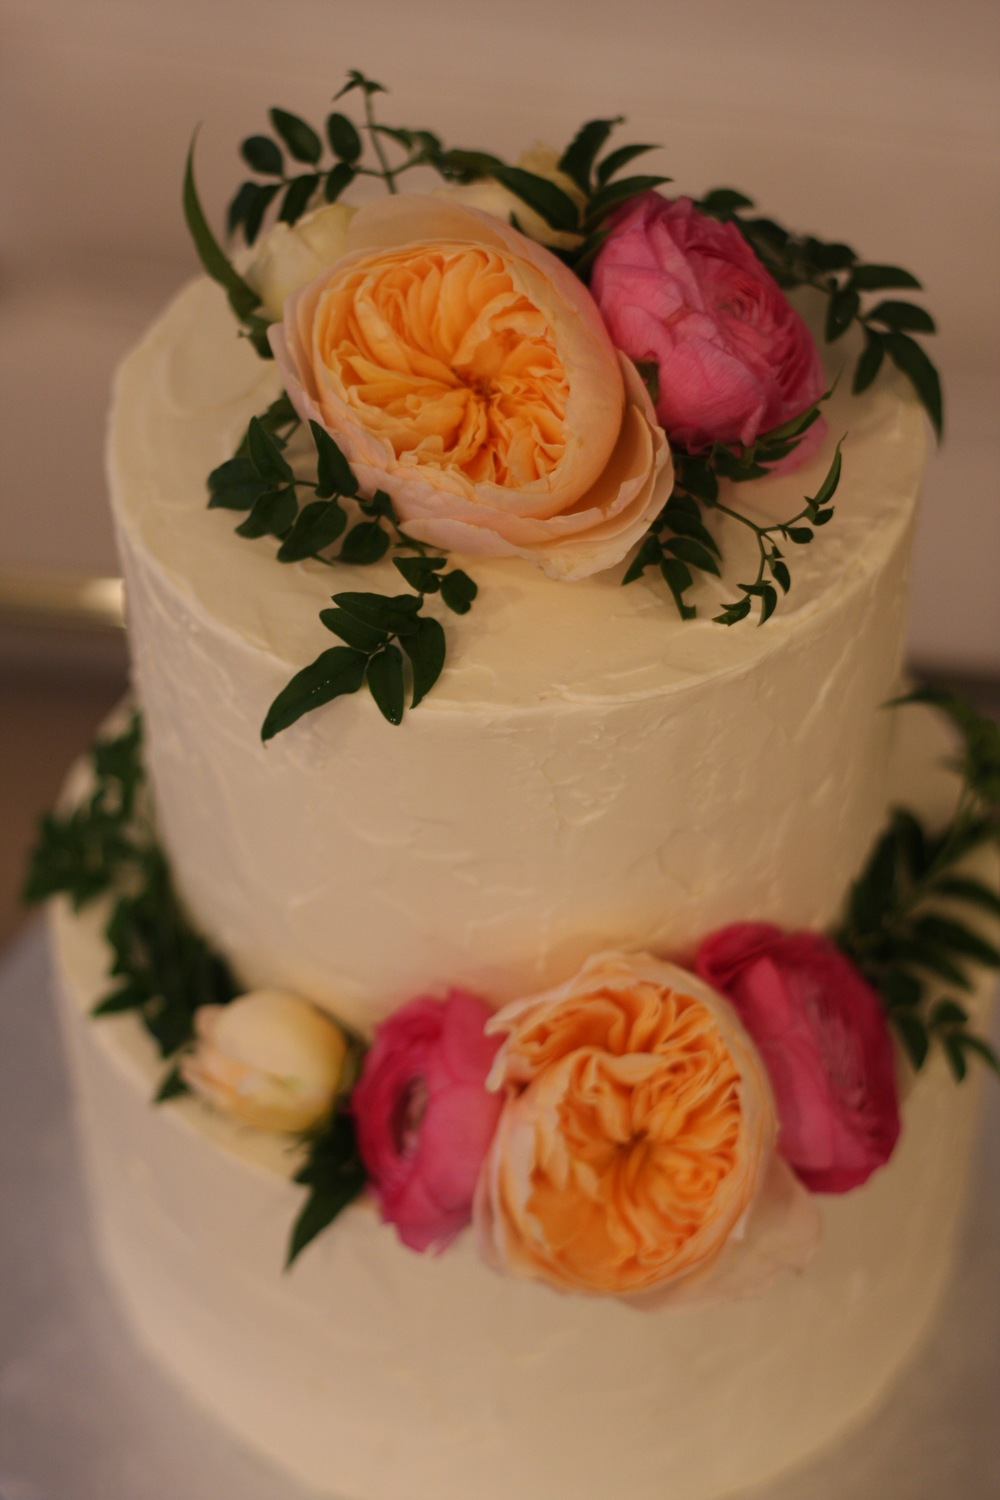 Rustic Buttercream Cake with Roses